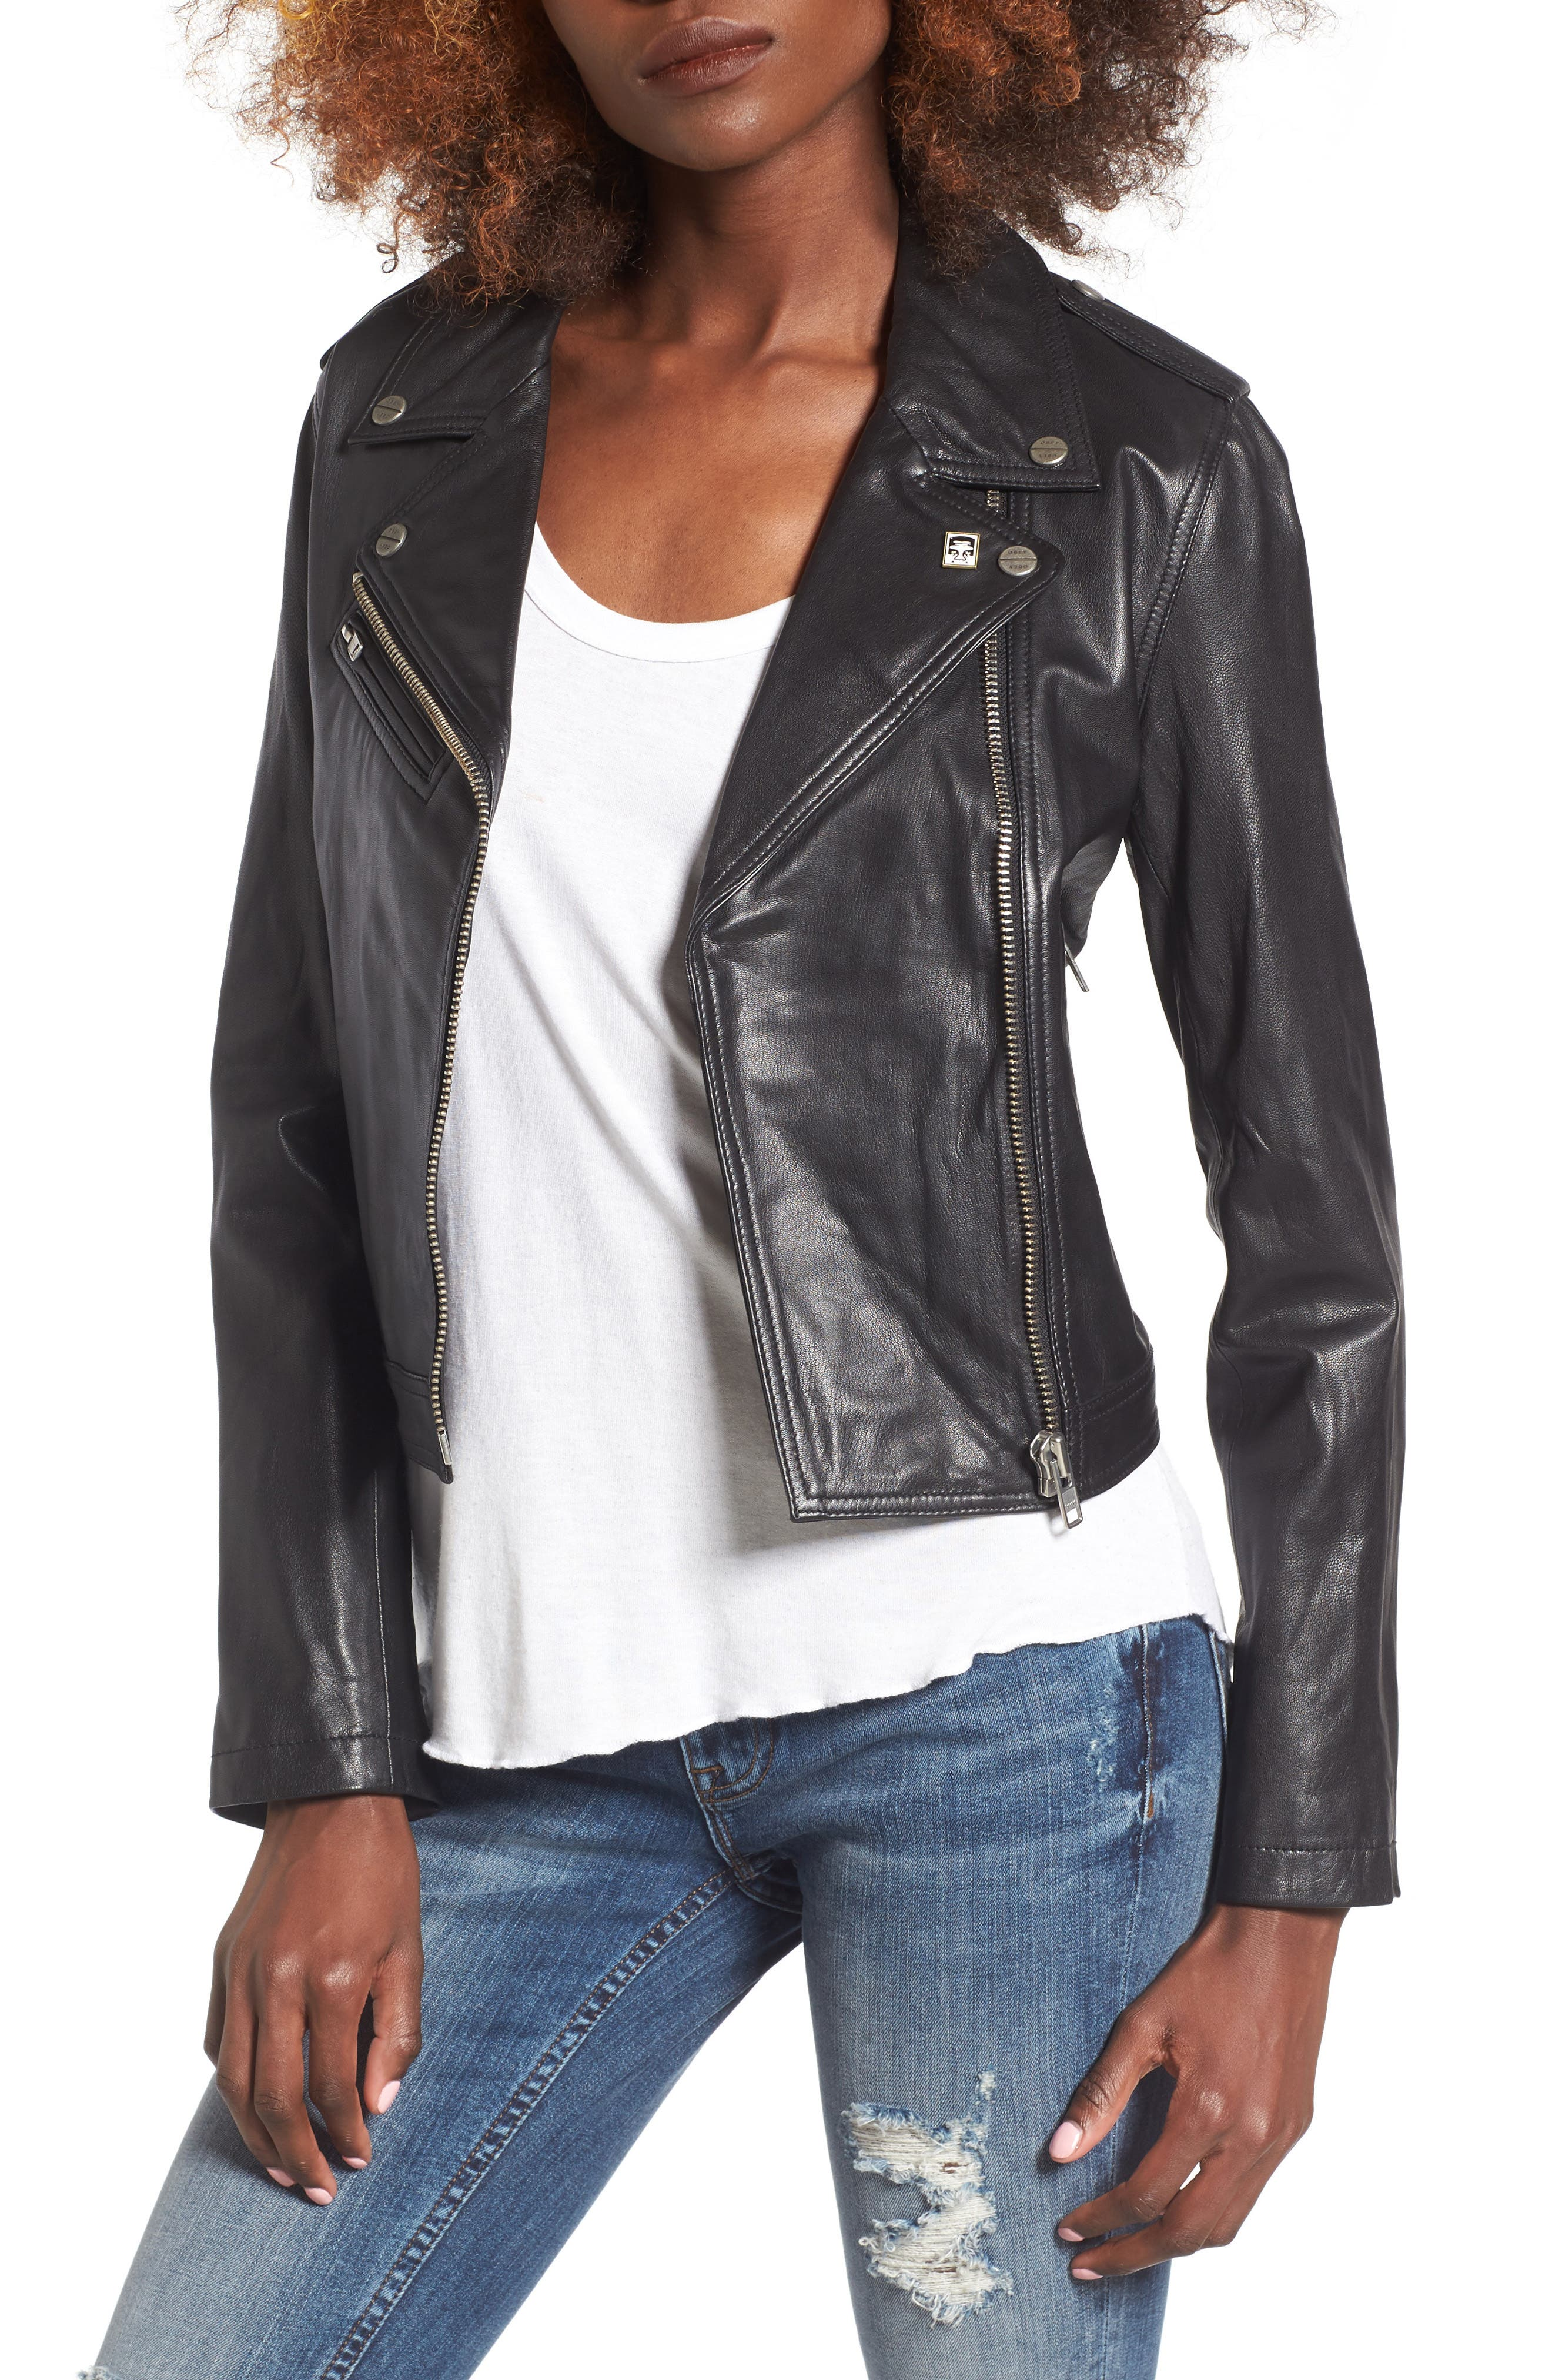 Diablo City Leather Moto Jacket,                         Main,                         color, Black